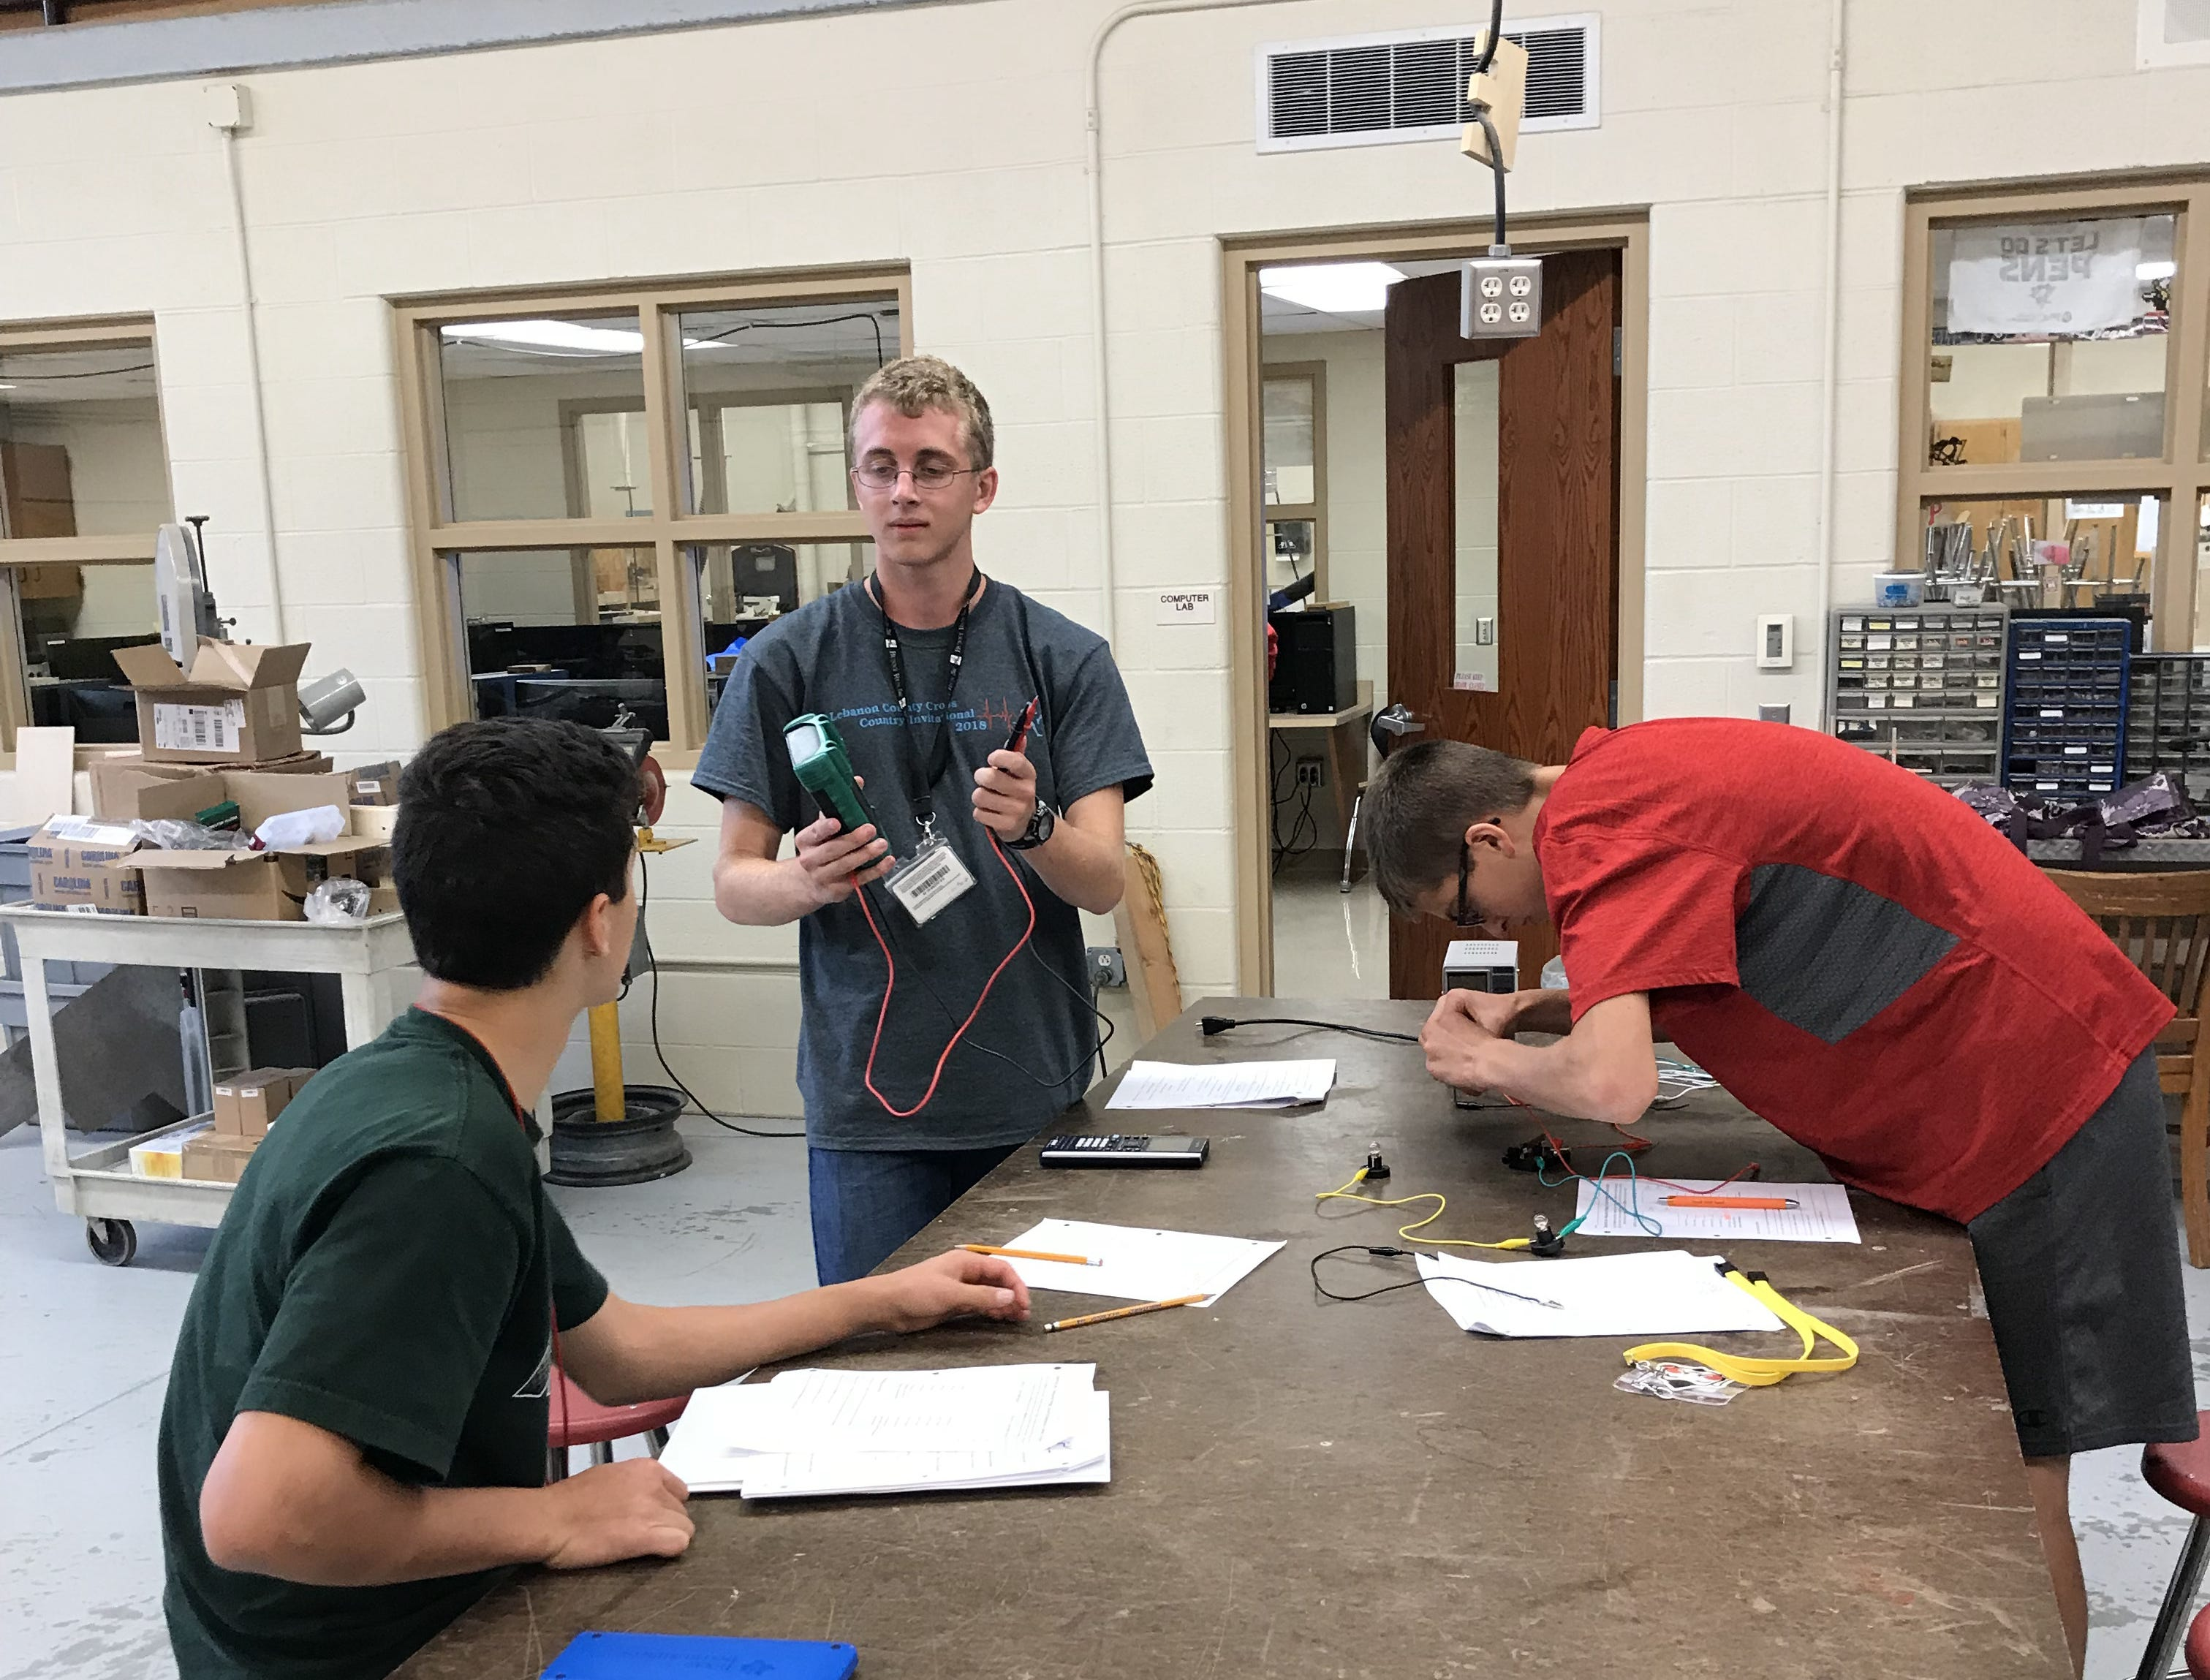 Senior Ethan Fortuna, center, explains a point about electric circuits to classmates in Annville-Cleona's STEM-focused Project Lead The Way class.